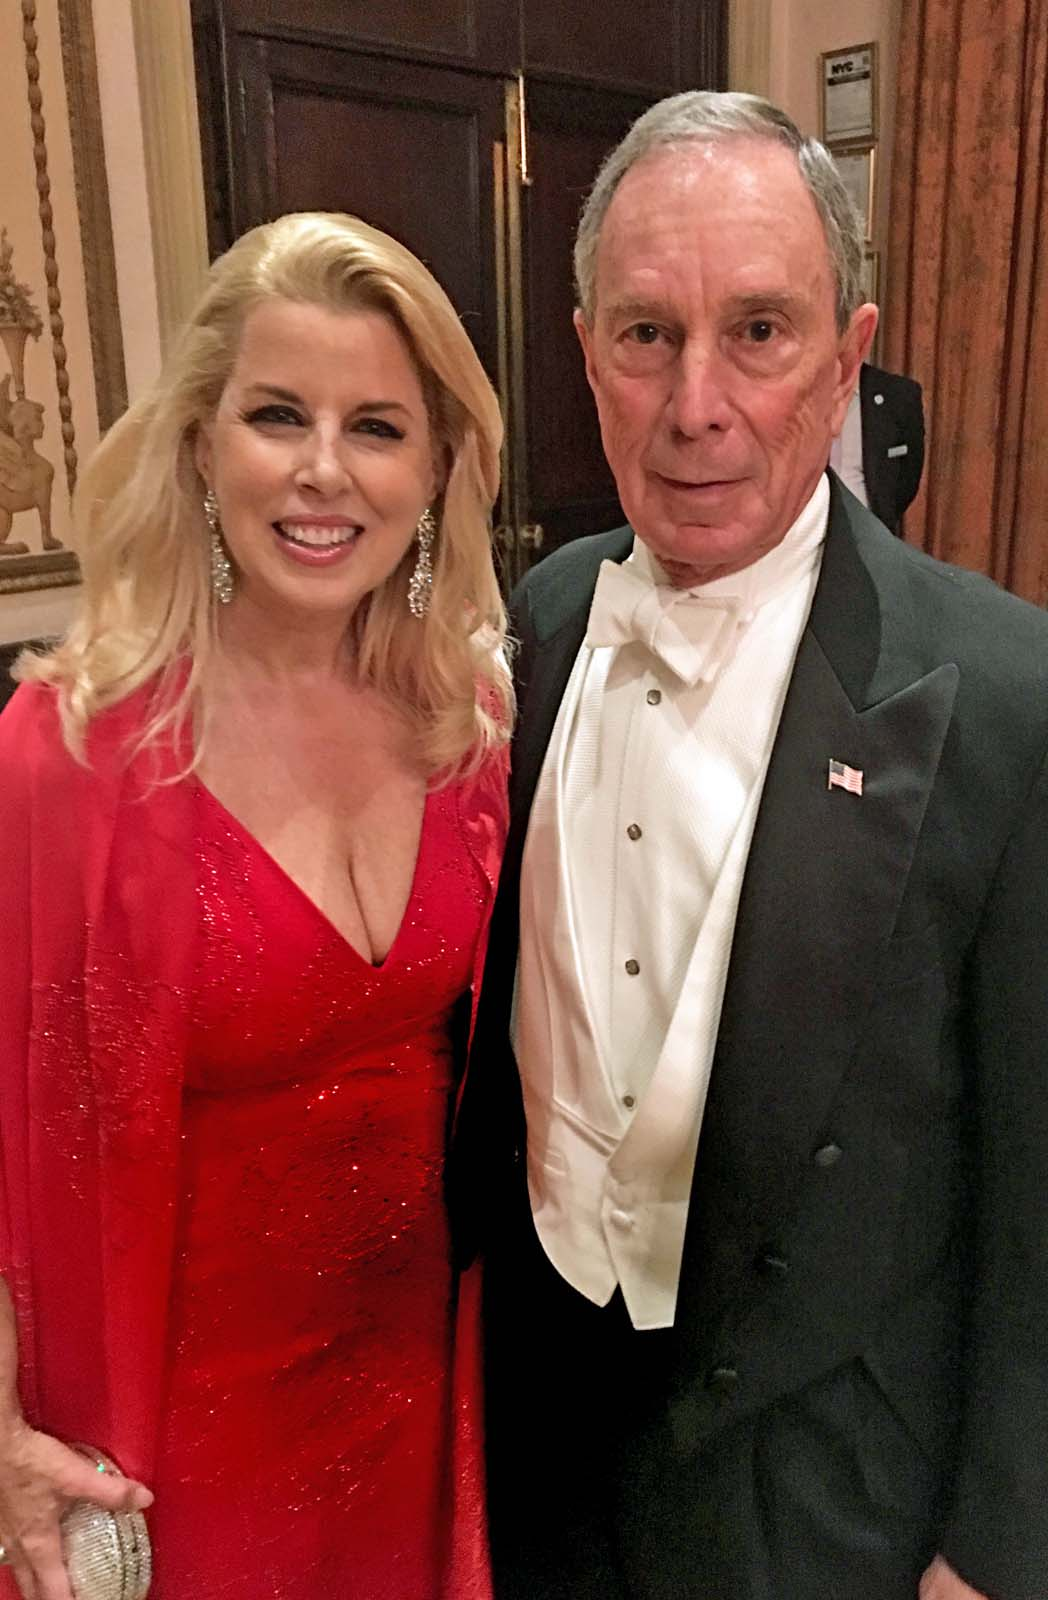 Rita Cosby With Mike Bloomberg